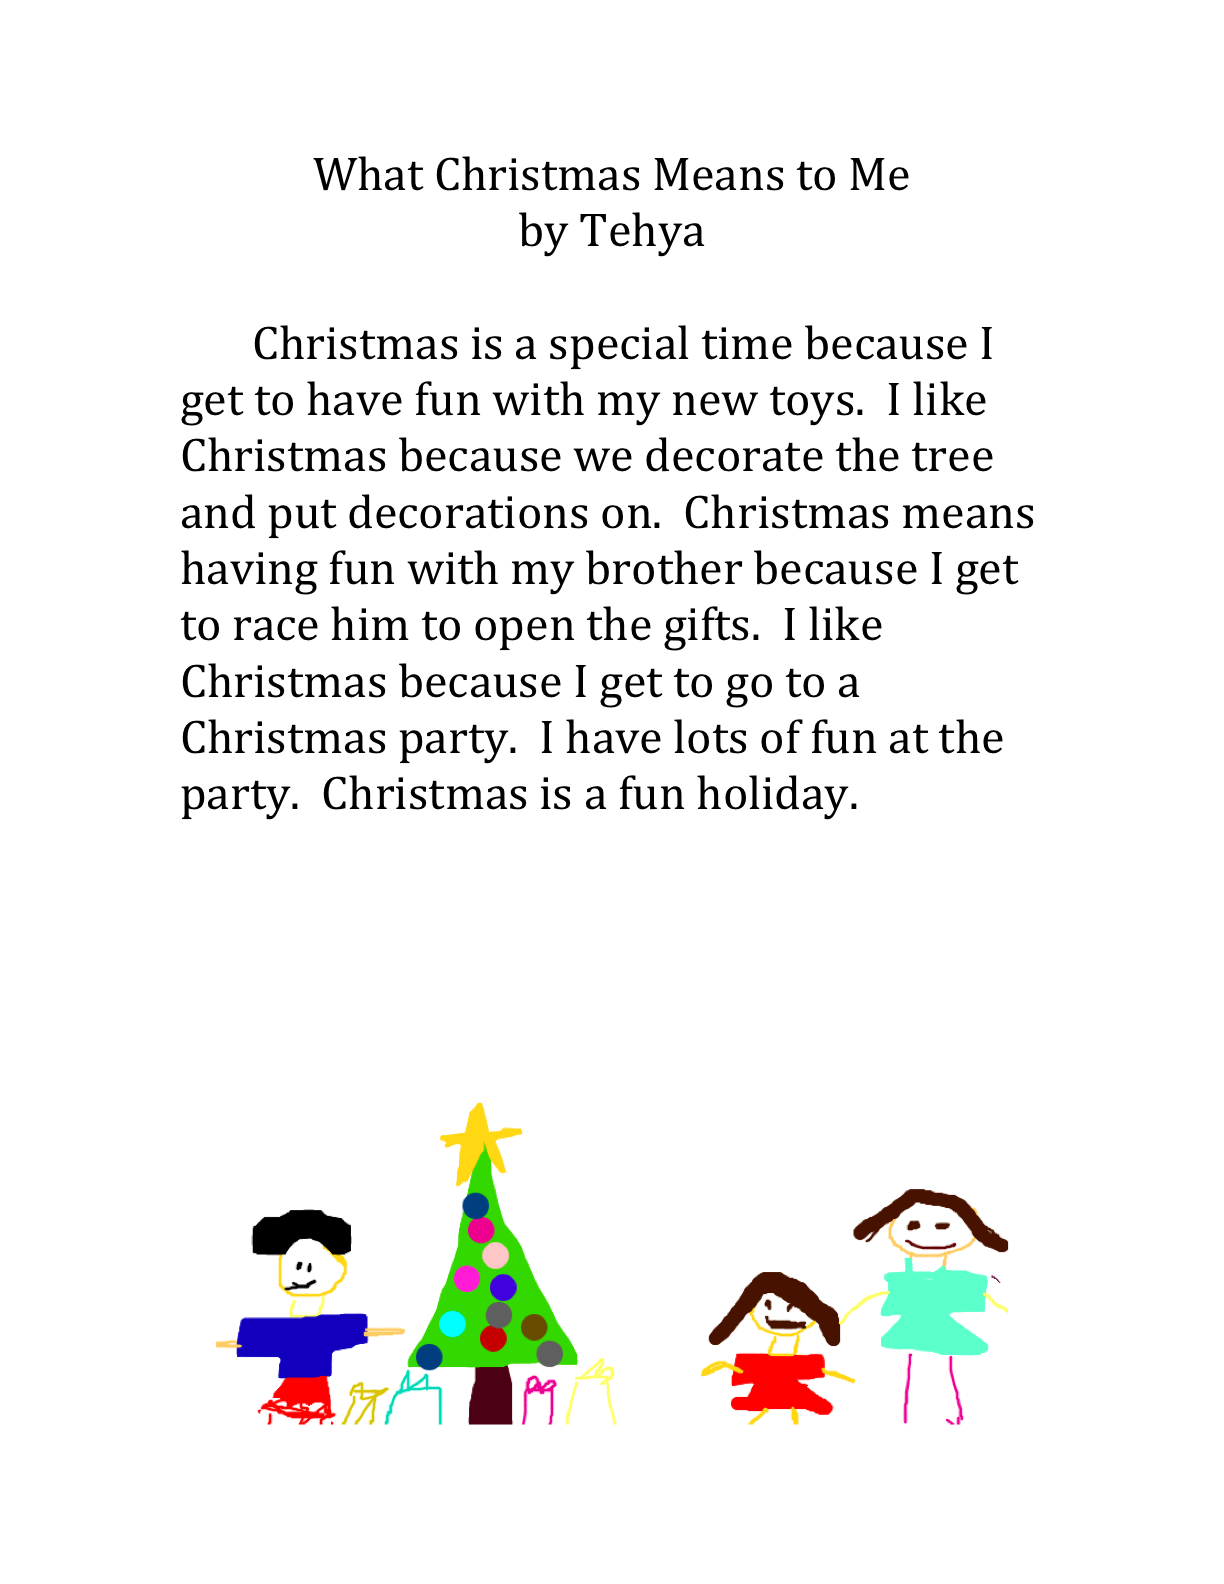 what christmas means to me by tehya | nicesimplethings